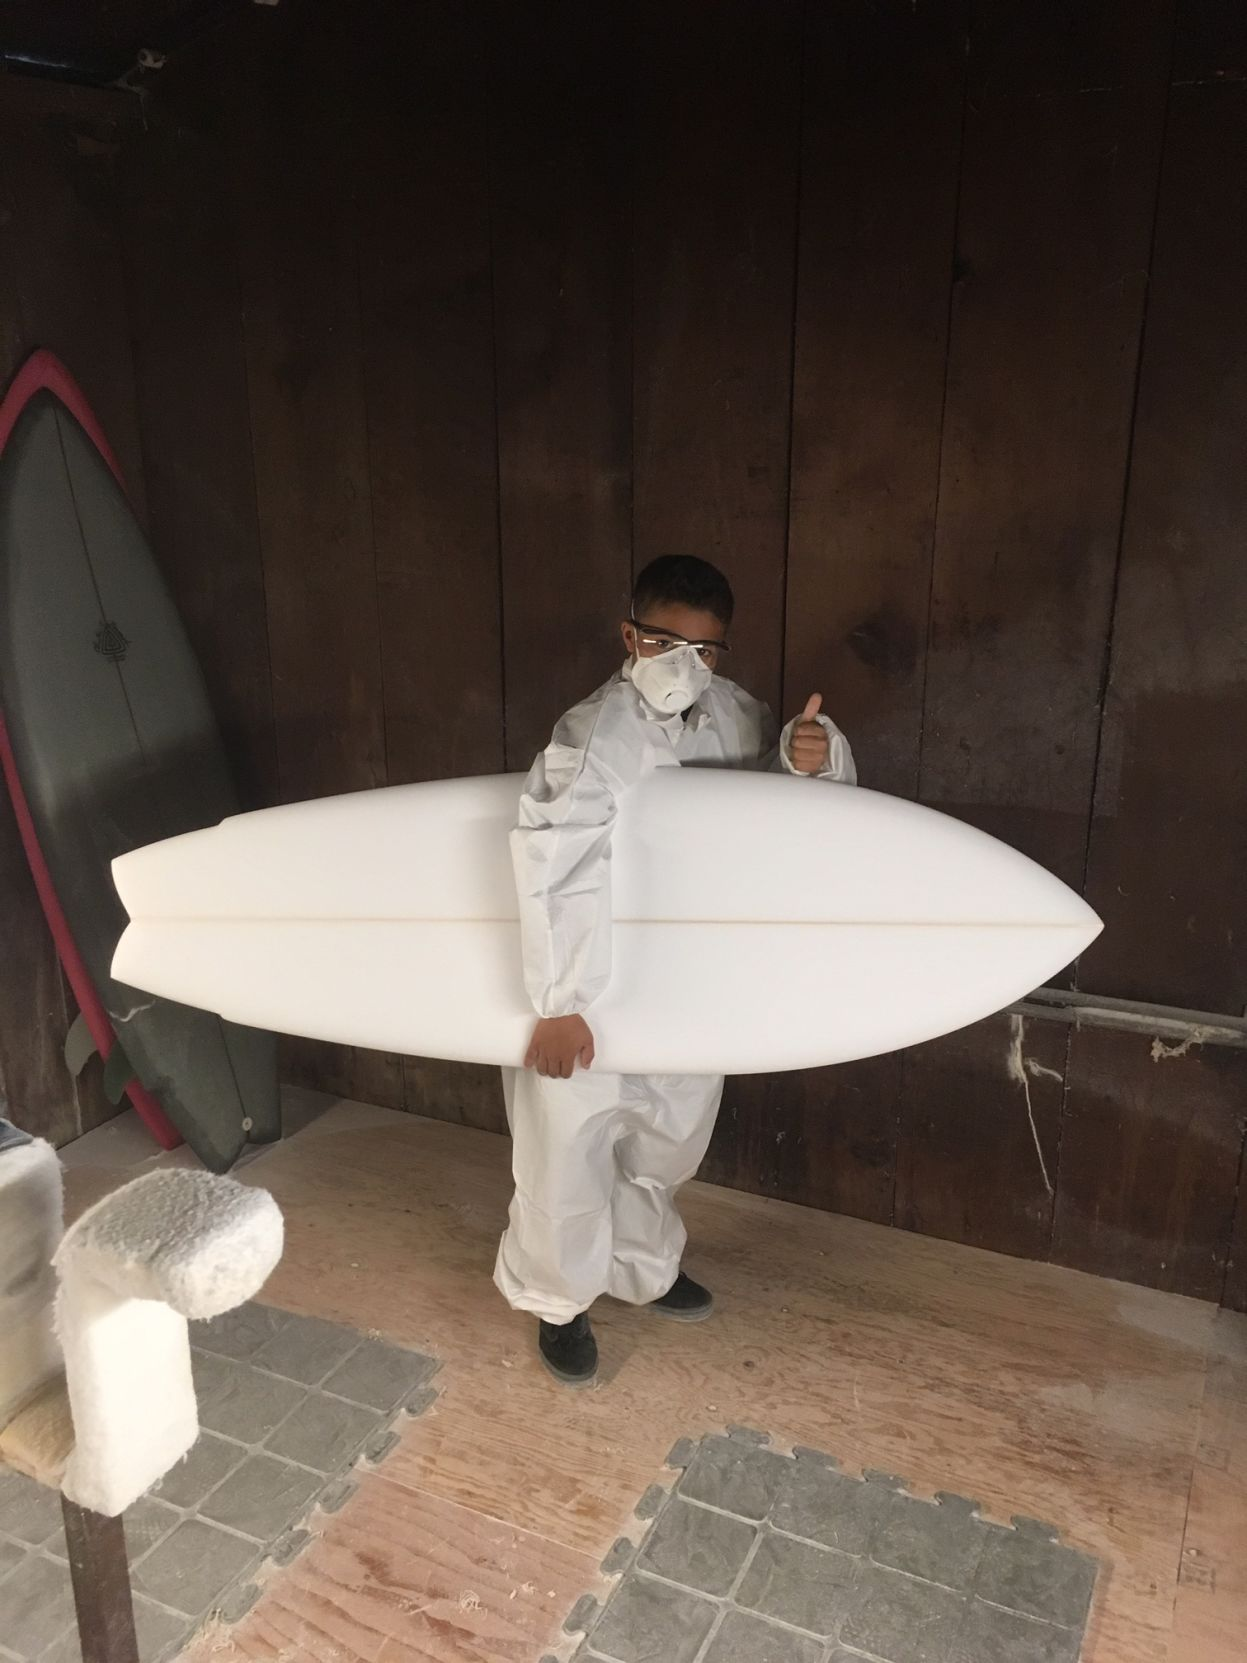 Surfboard-shaping student